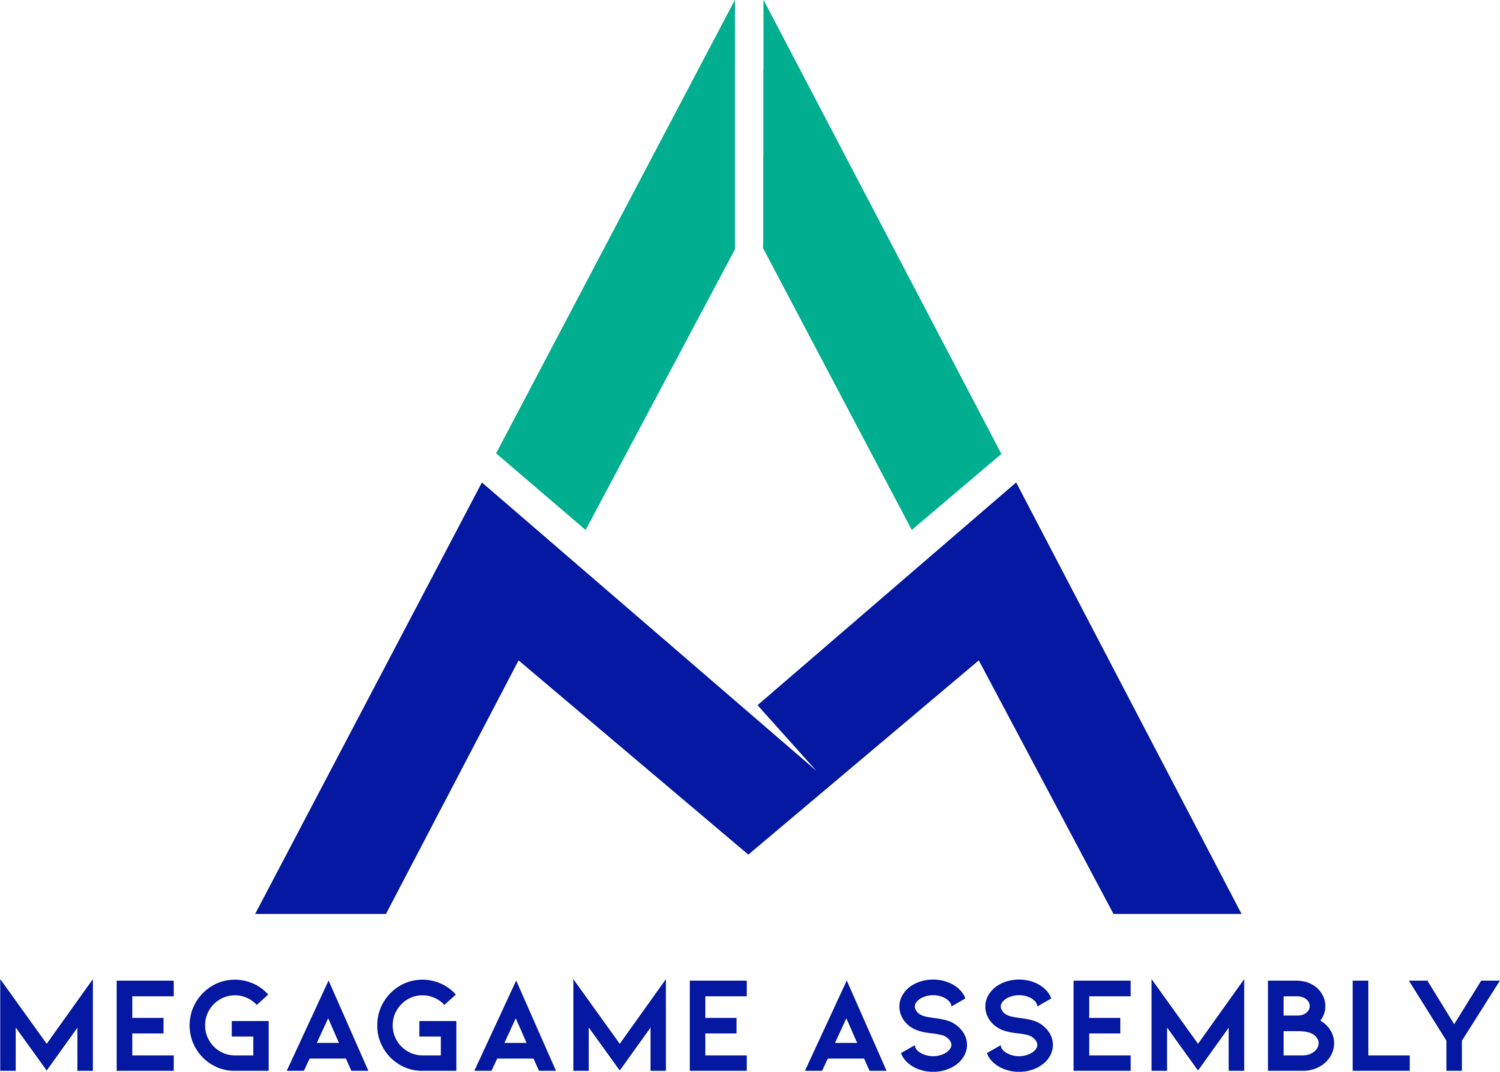 Megagame Assembly